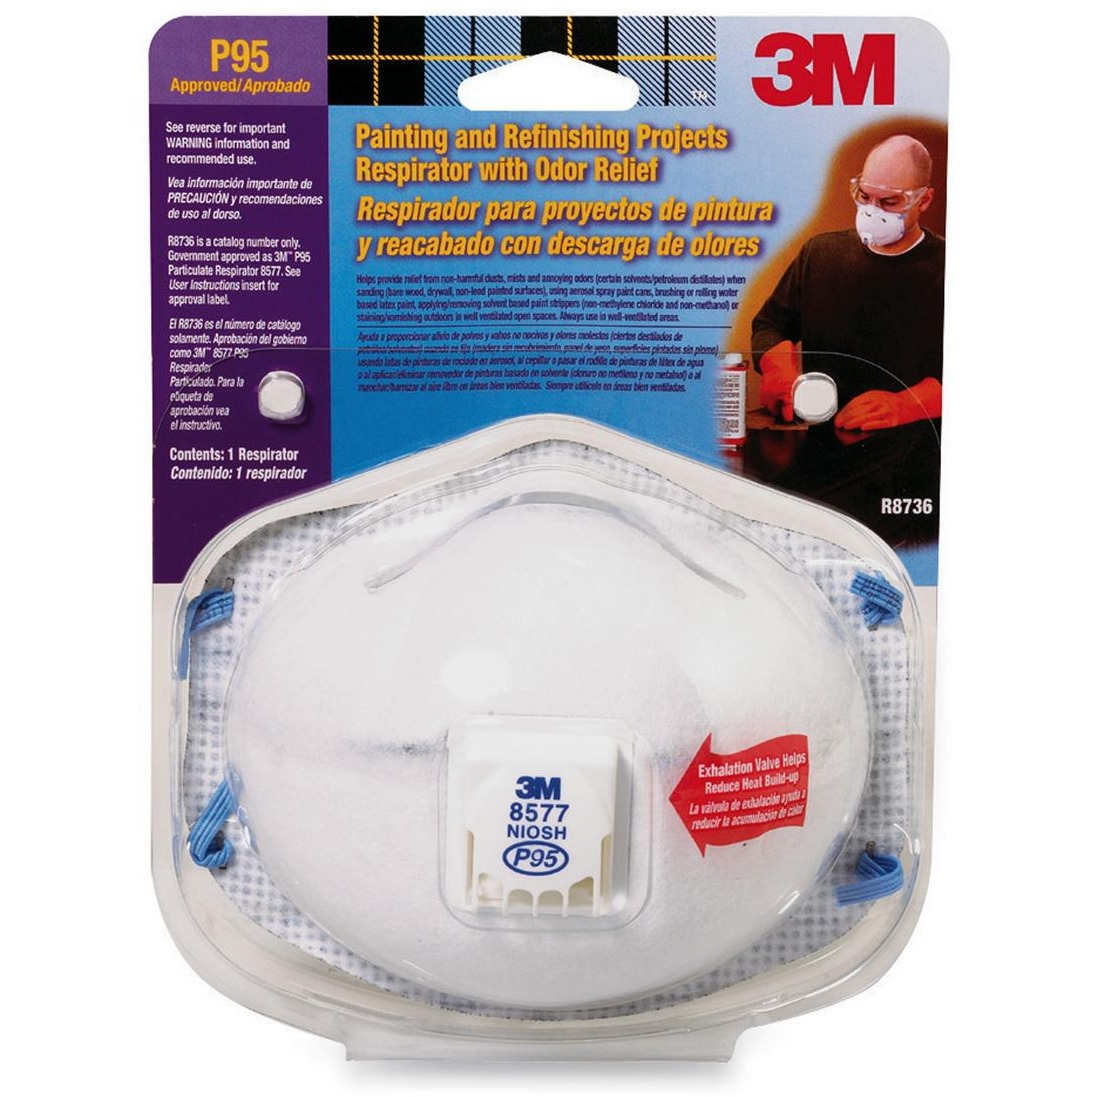 3M Advanced Filter Relief Respirator, White, 1 / Pack (Quantity)